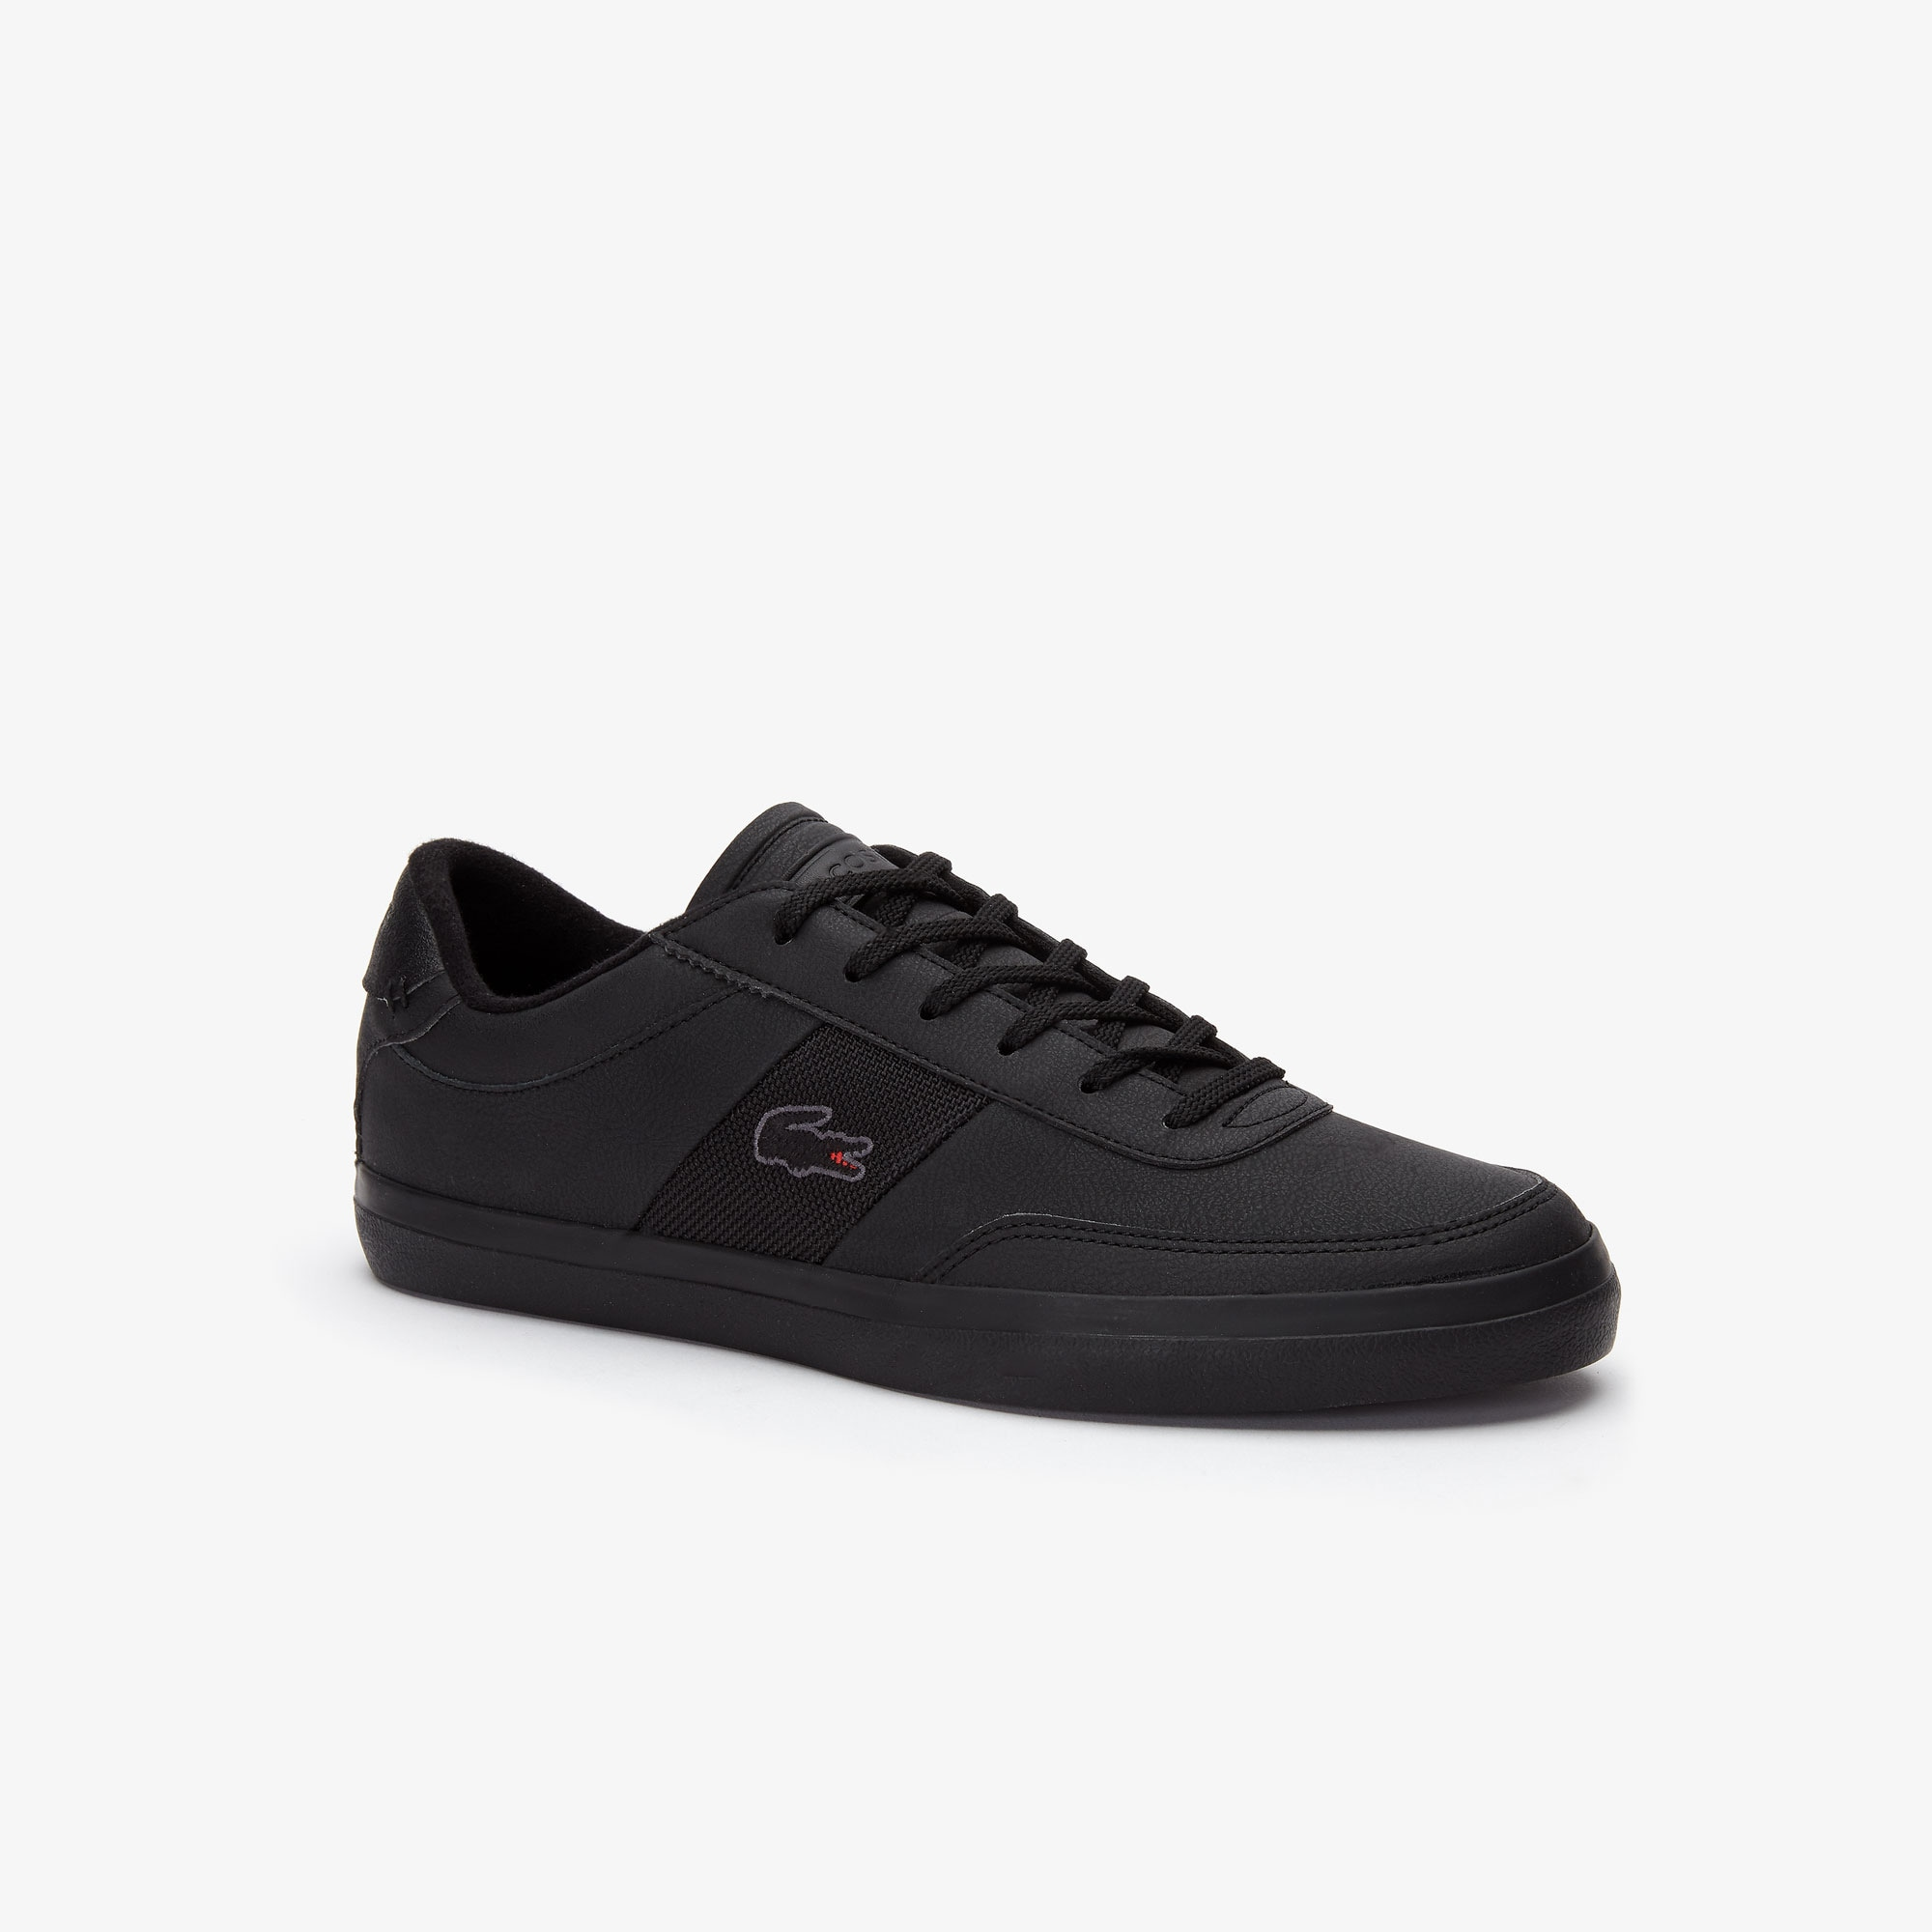 c800b522d41 Lacoste shoes for men: Sneakers, Trainers, Boots | LACOSTE